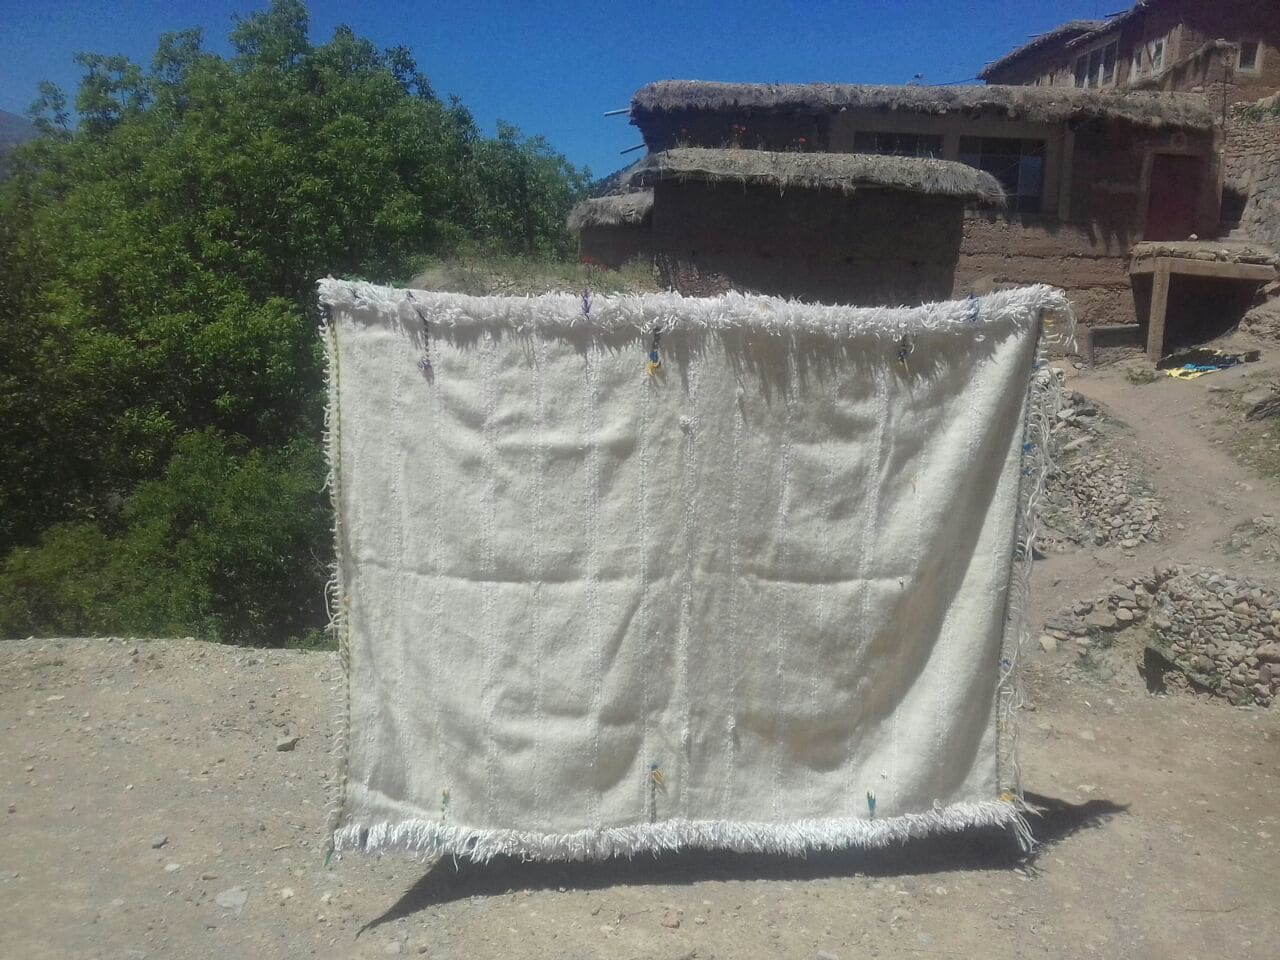 Handira Wedding Blanket